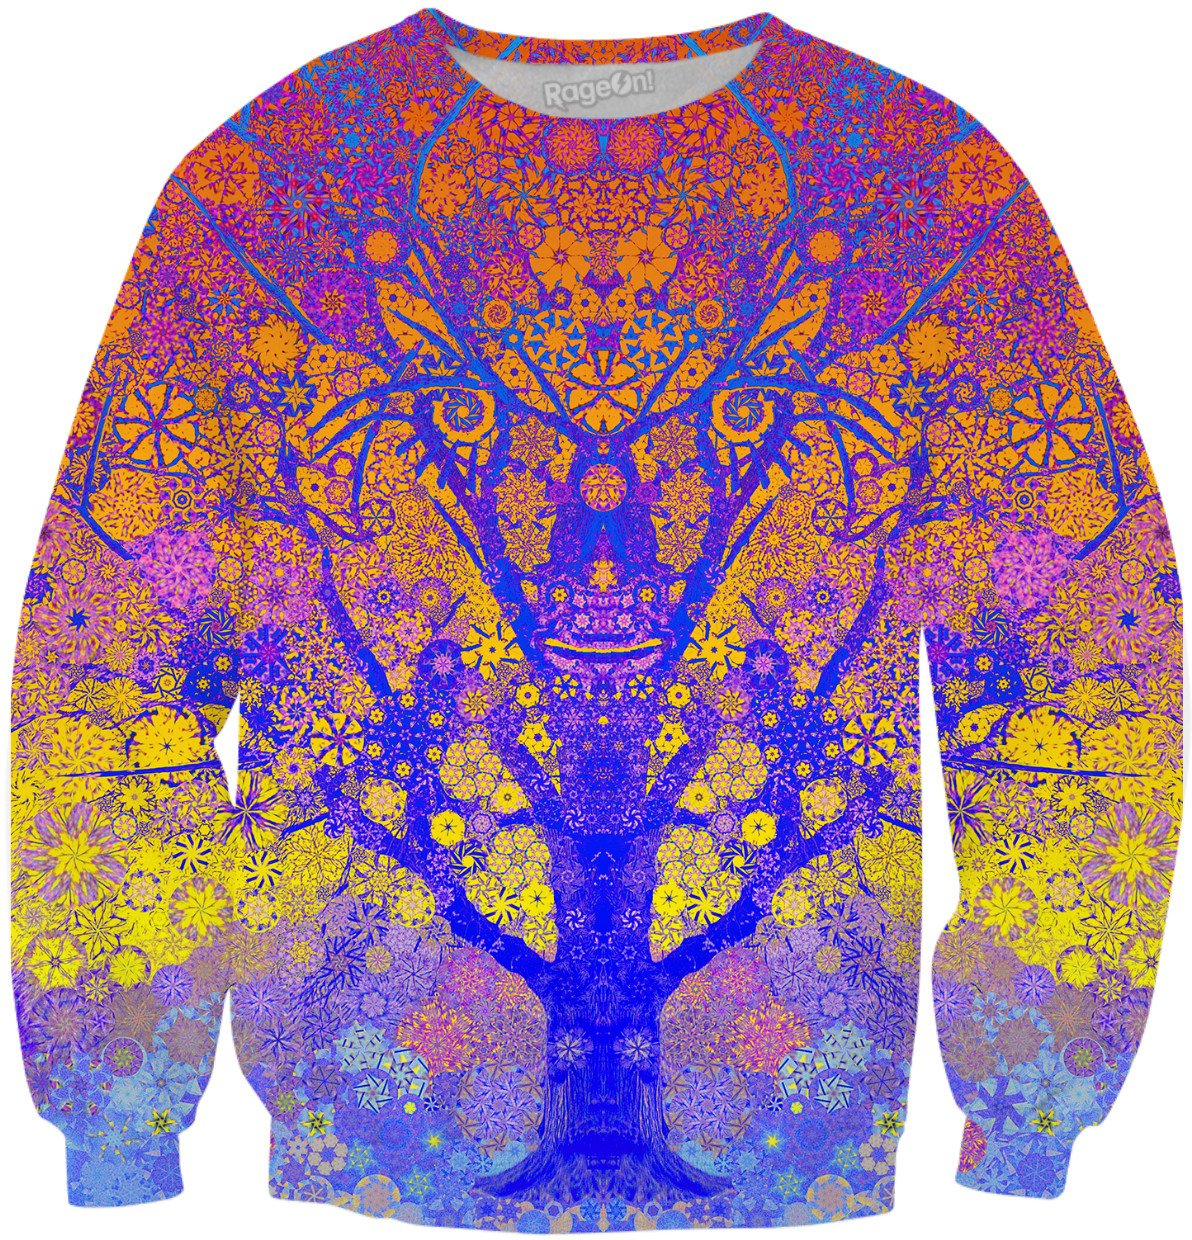 Fantastic Trip Tree Sweatshirt - TShirtsRUS.co